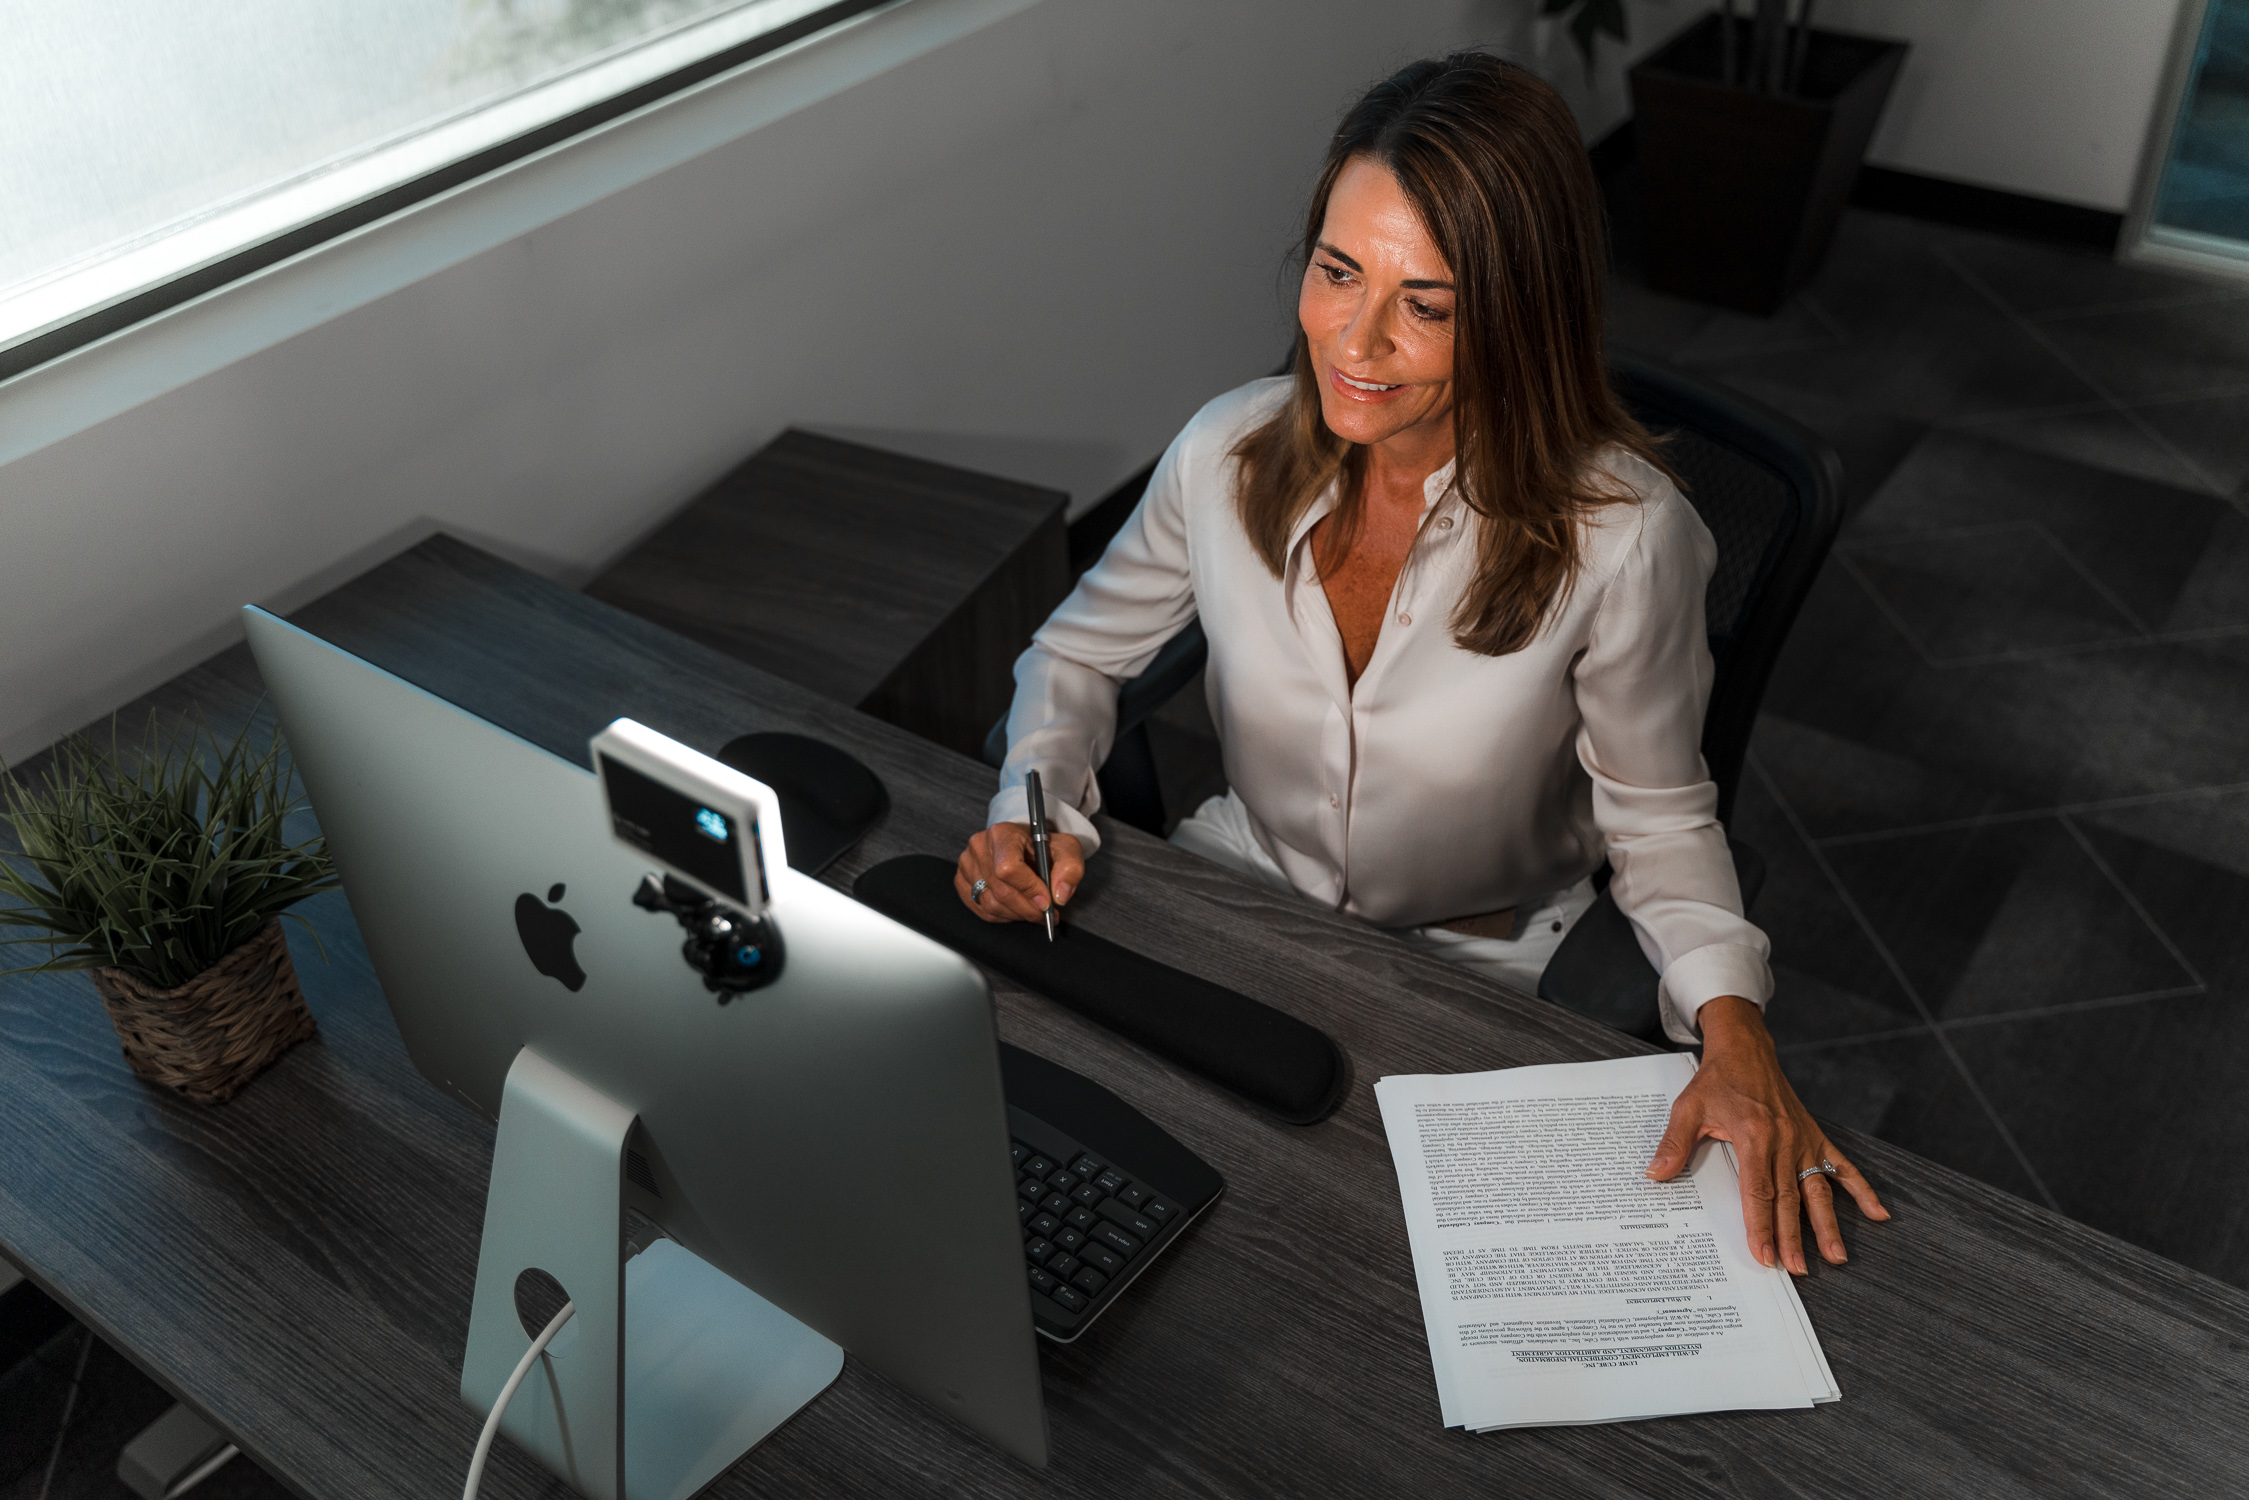 woman on remote work meeting using the video conferencing lighting kit